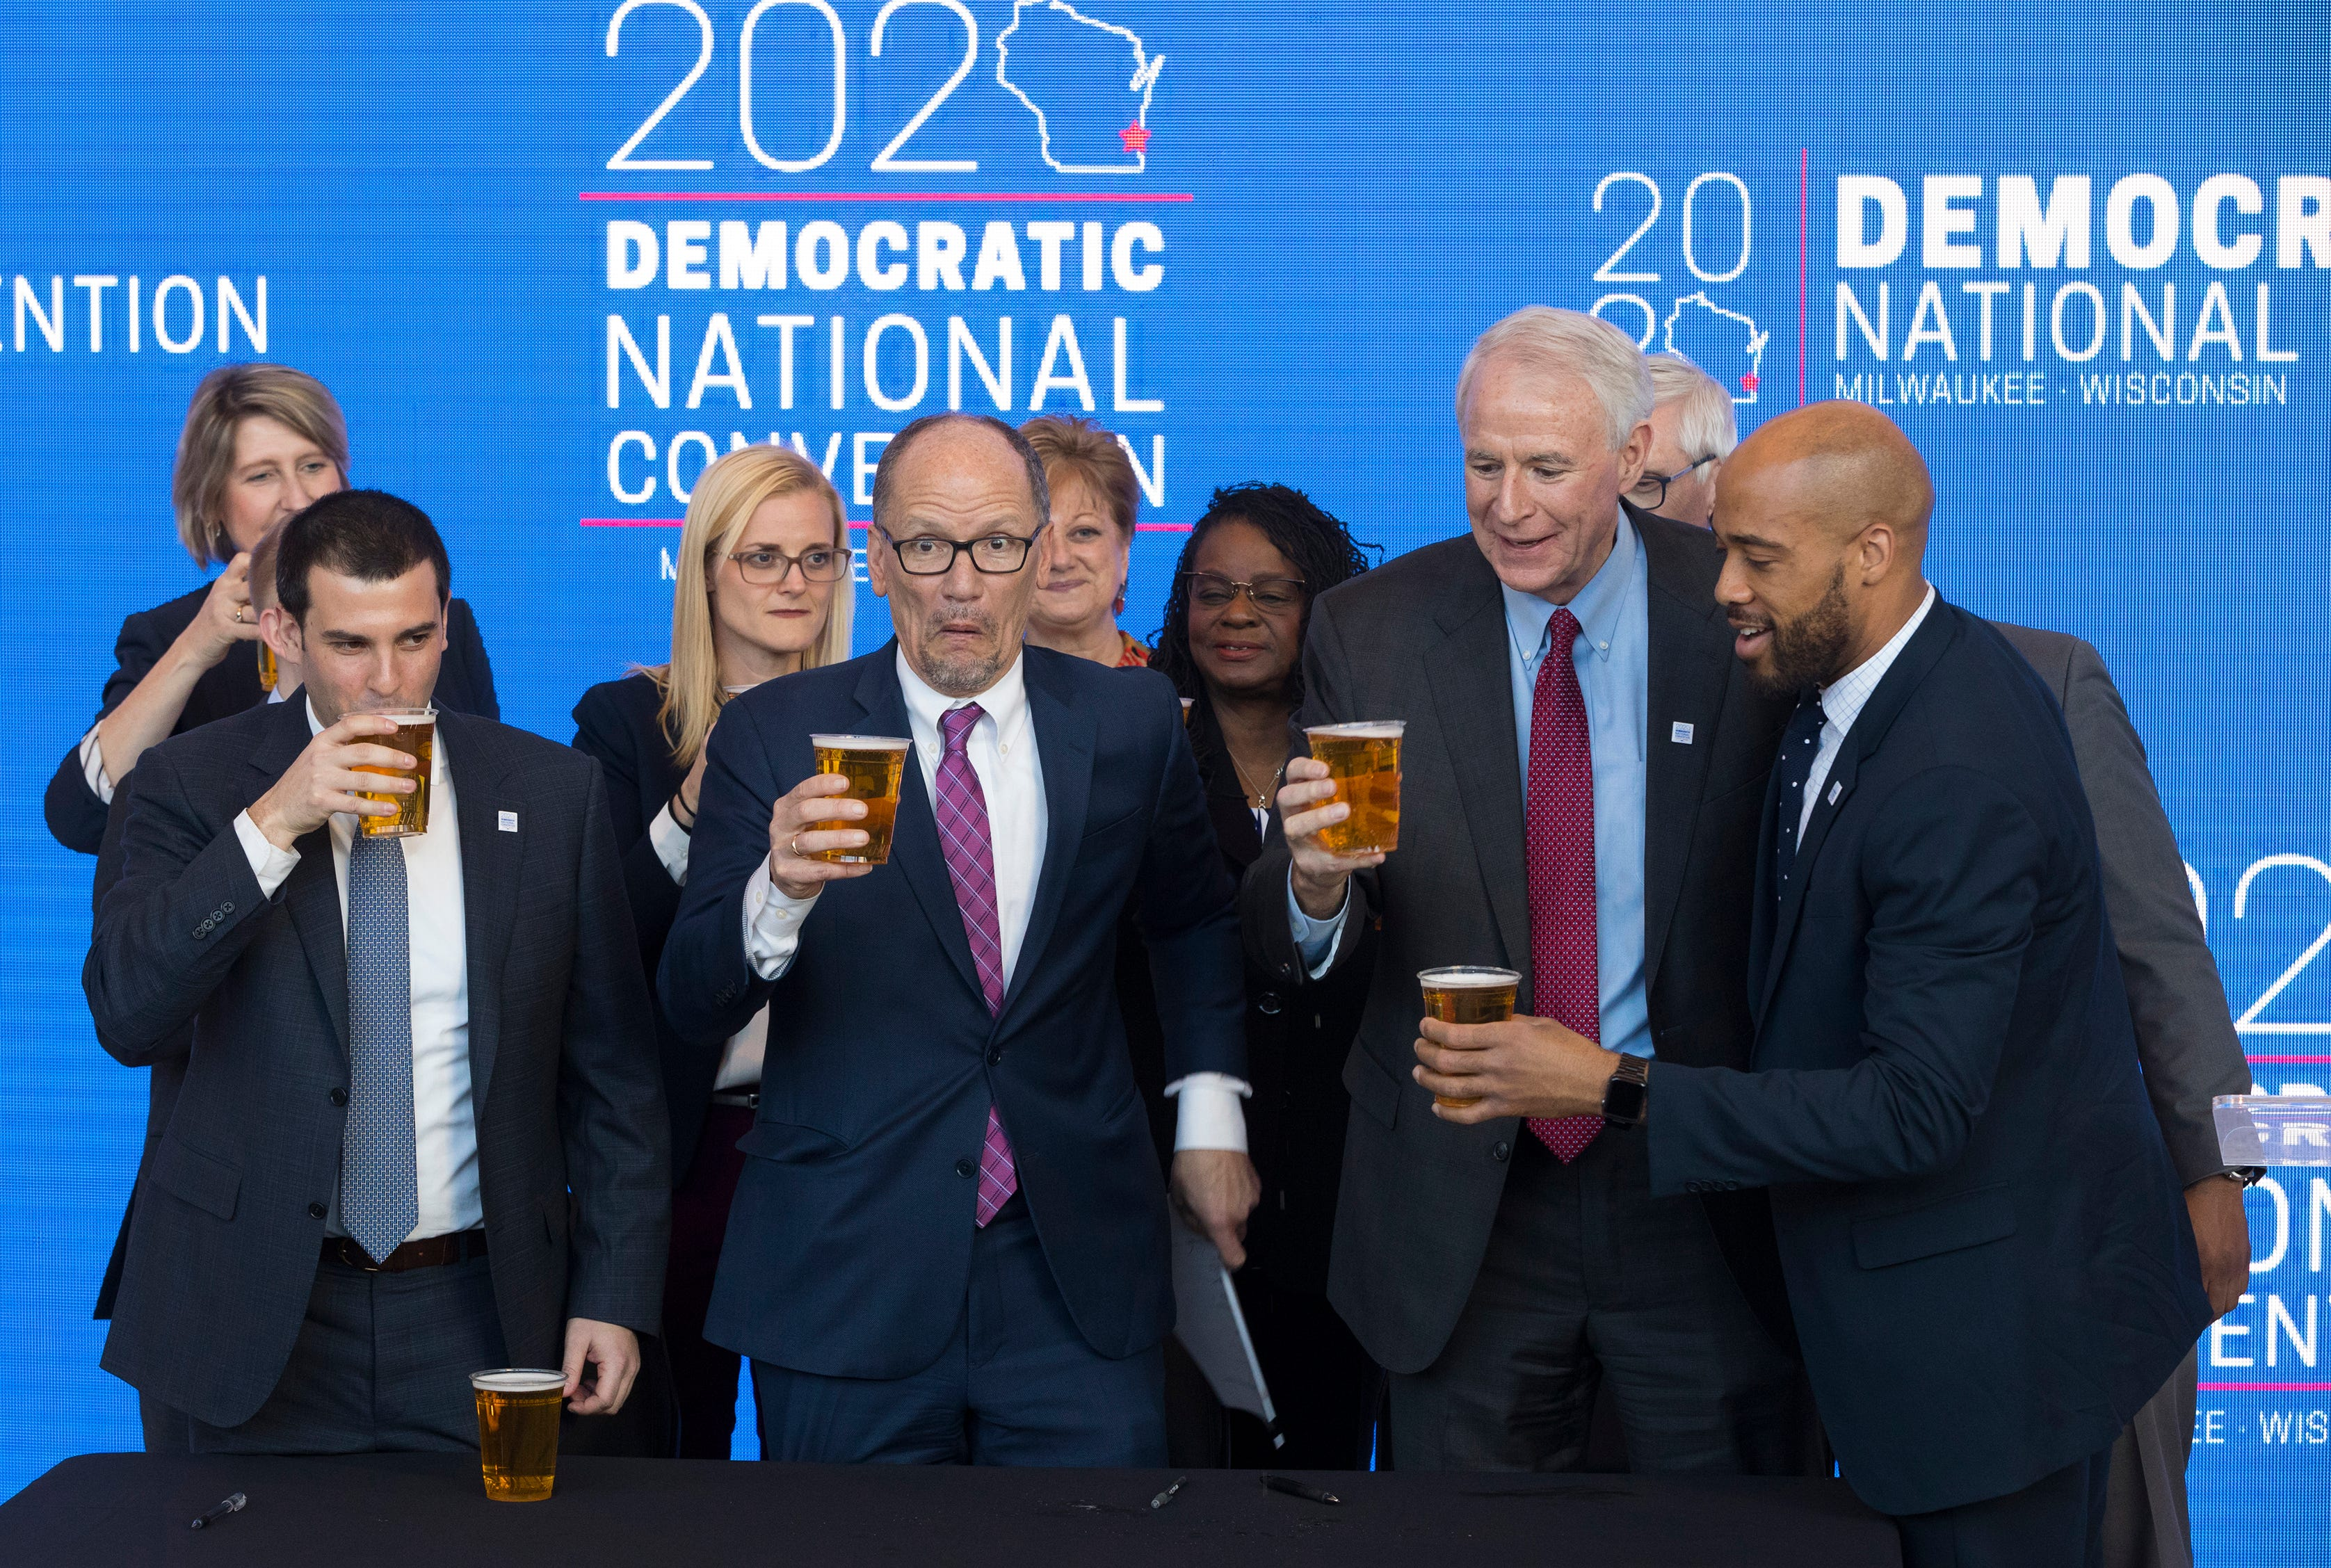 Organizers are scrambling to plan an unprecedented virtual gathering for the 2020 DNC